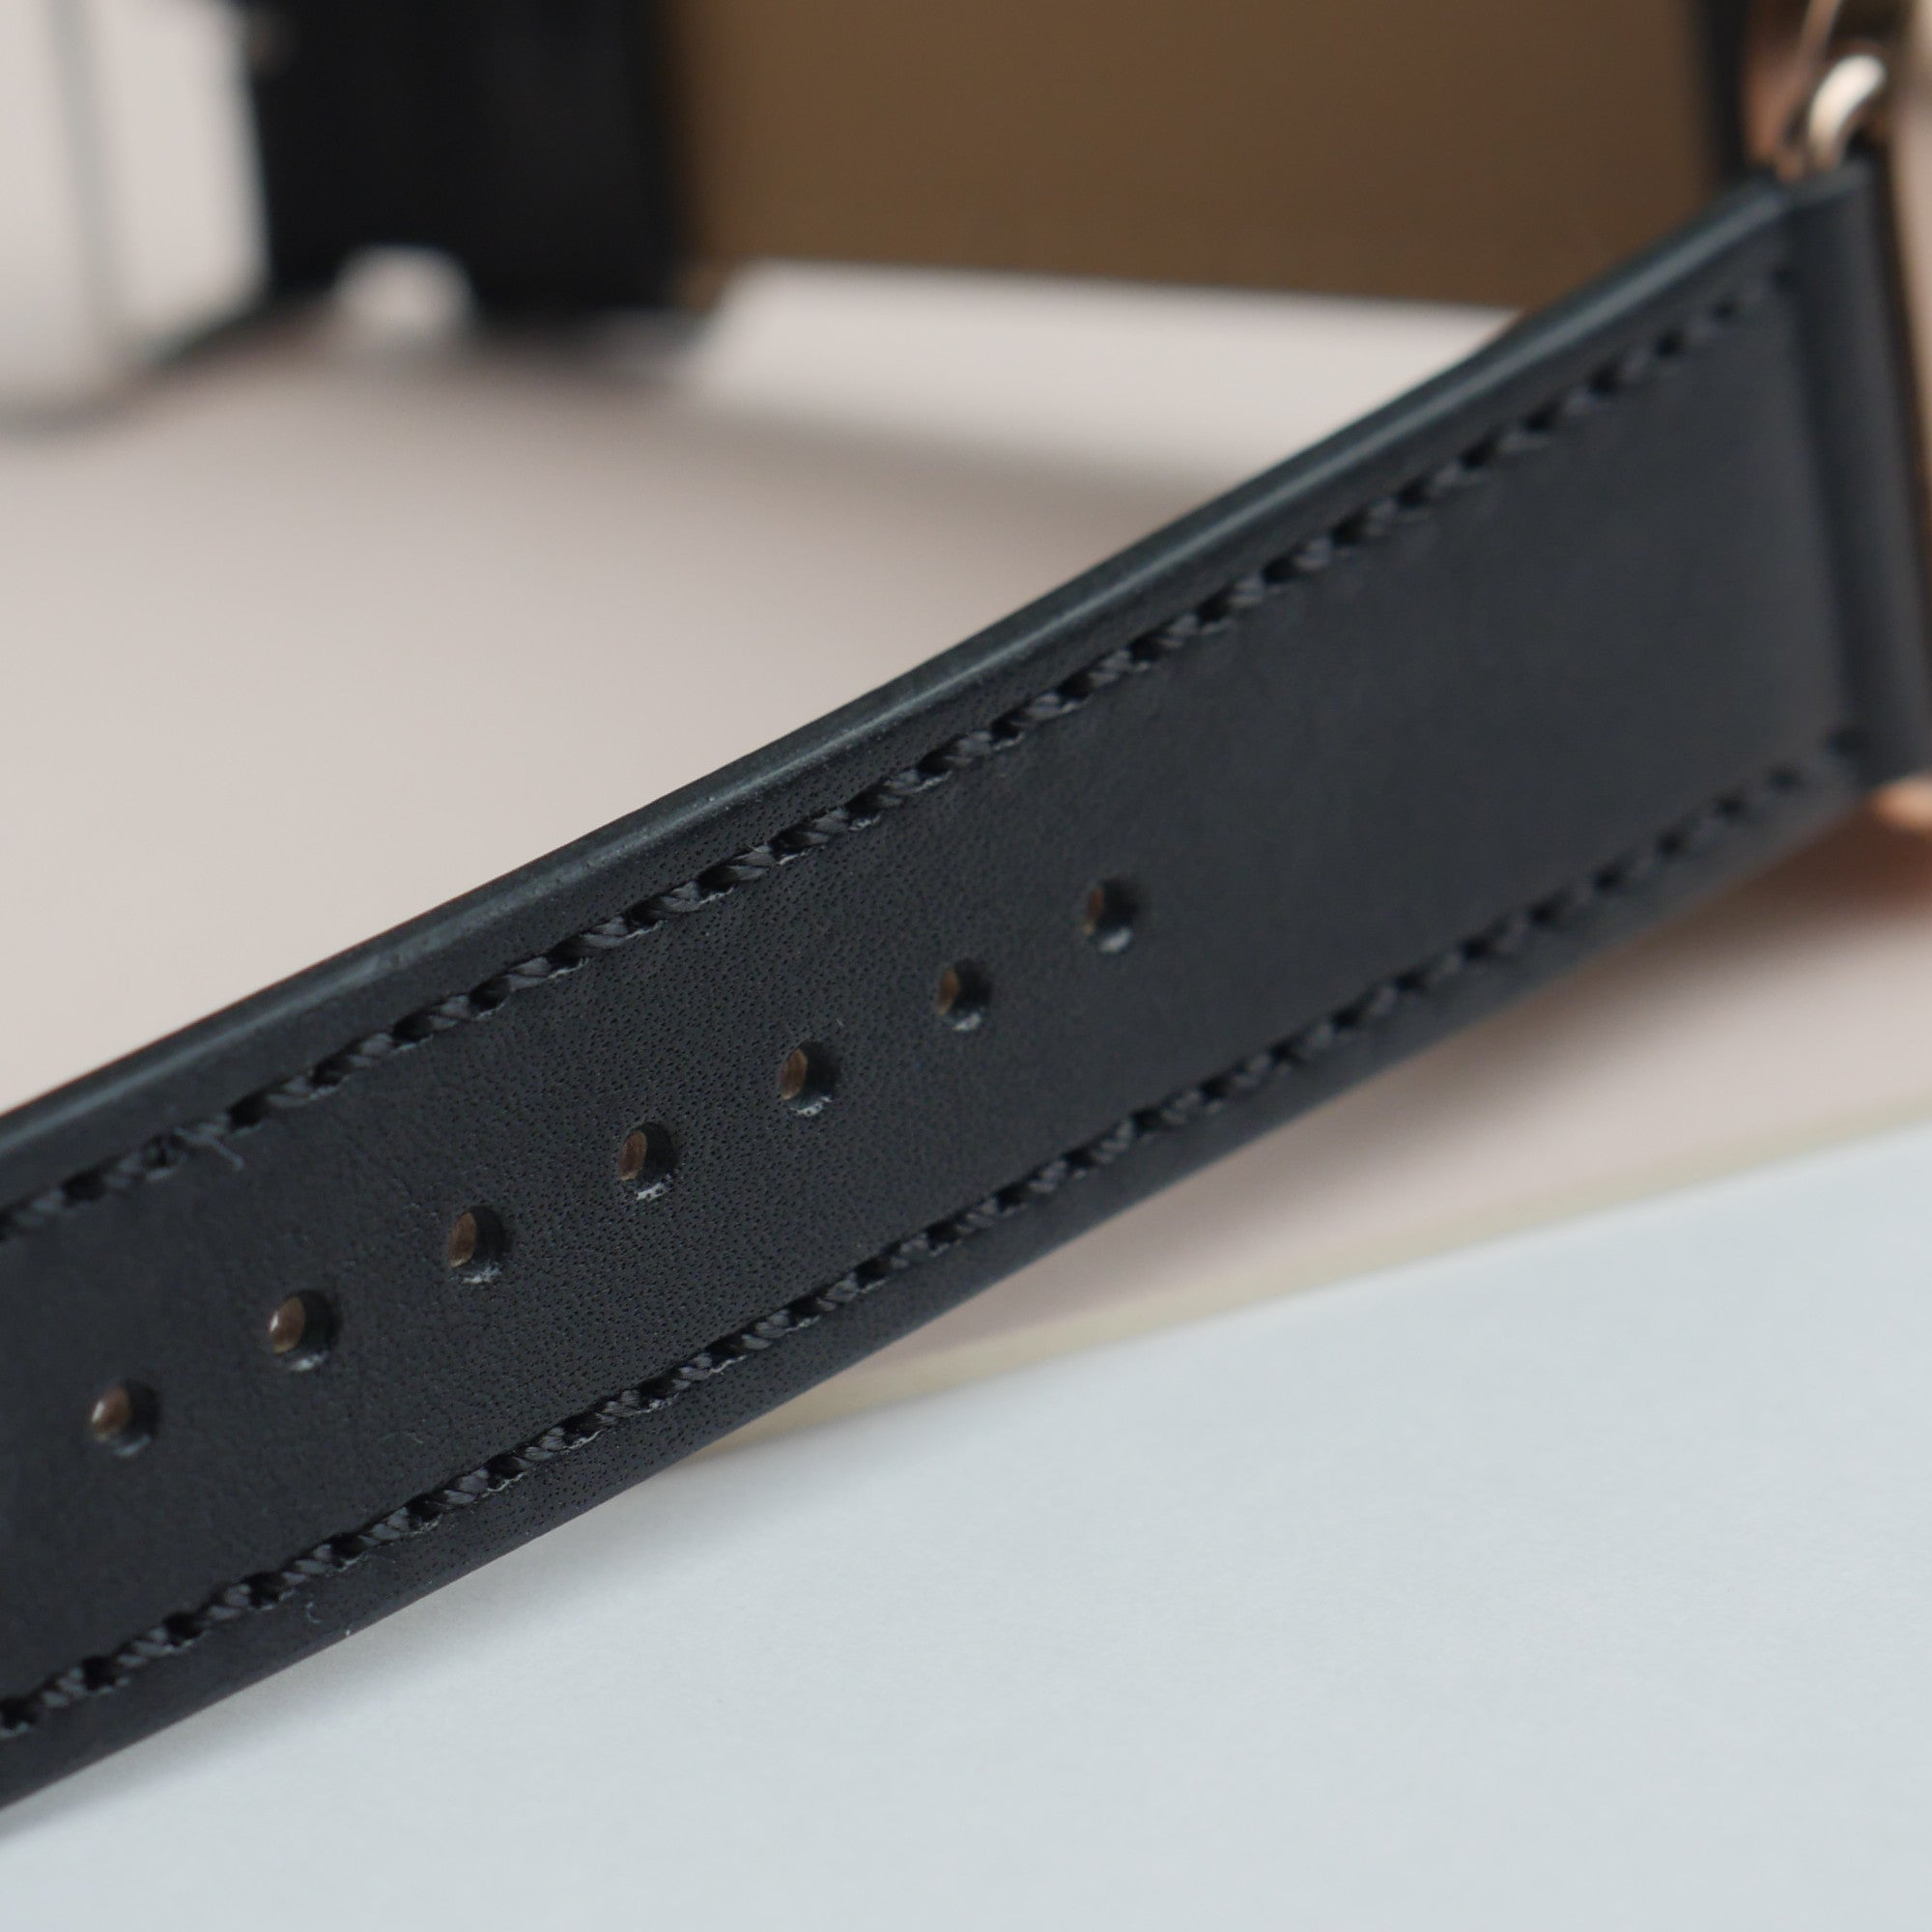 Pin and Buckle Apple Watch Bands - Elements of Luxury - Hand Stitched